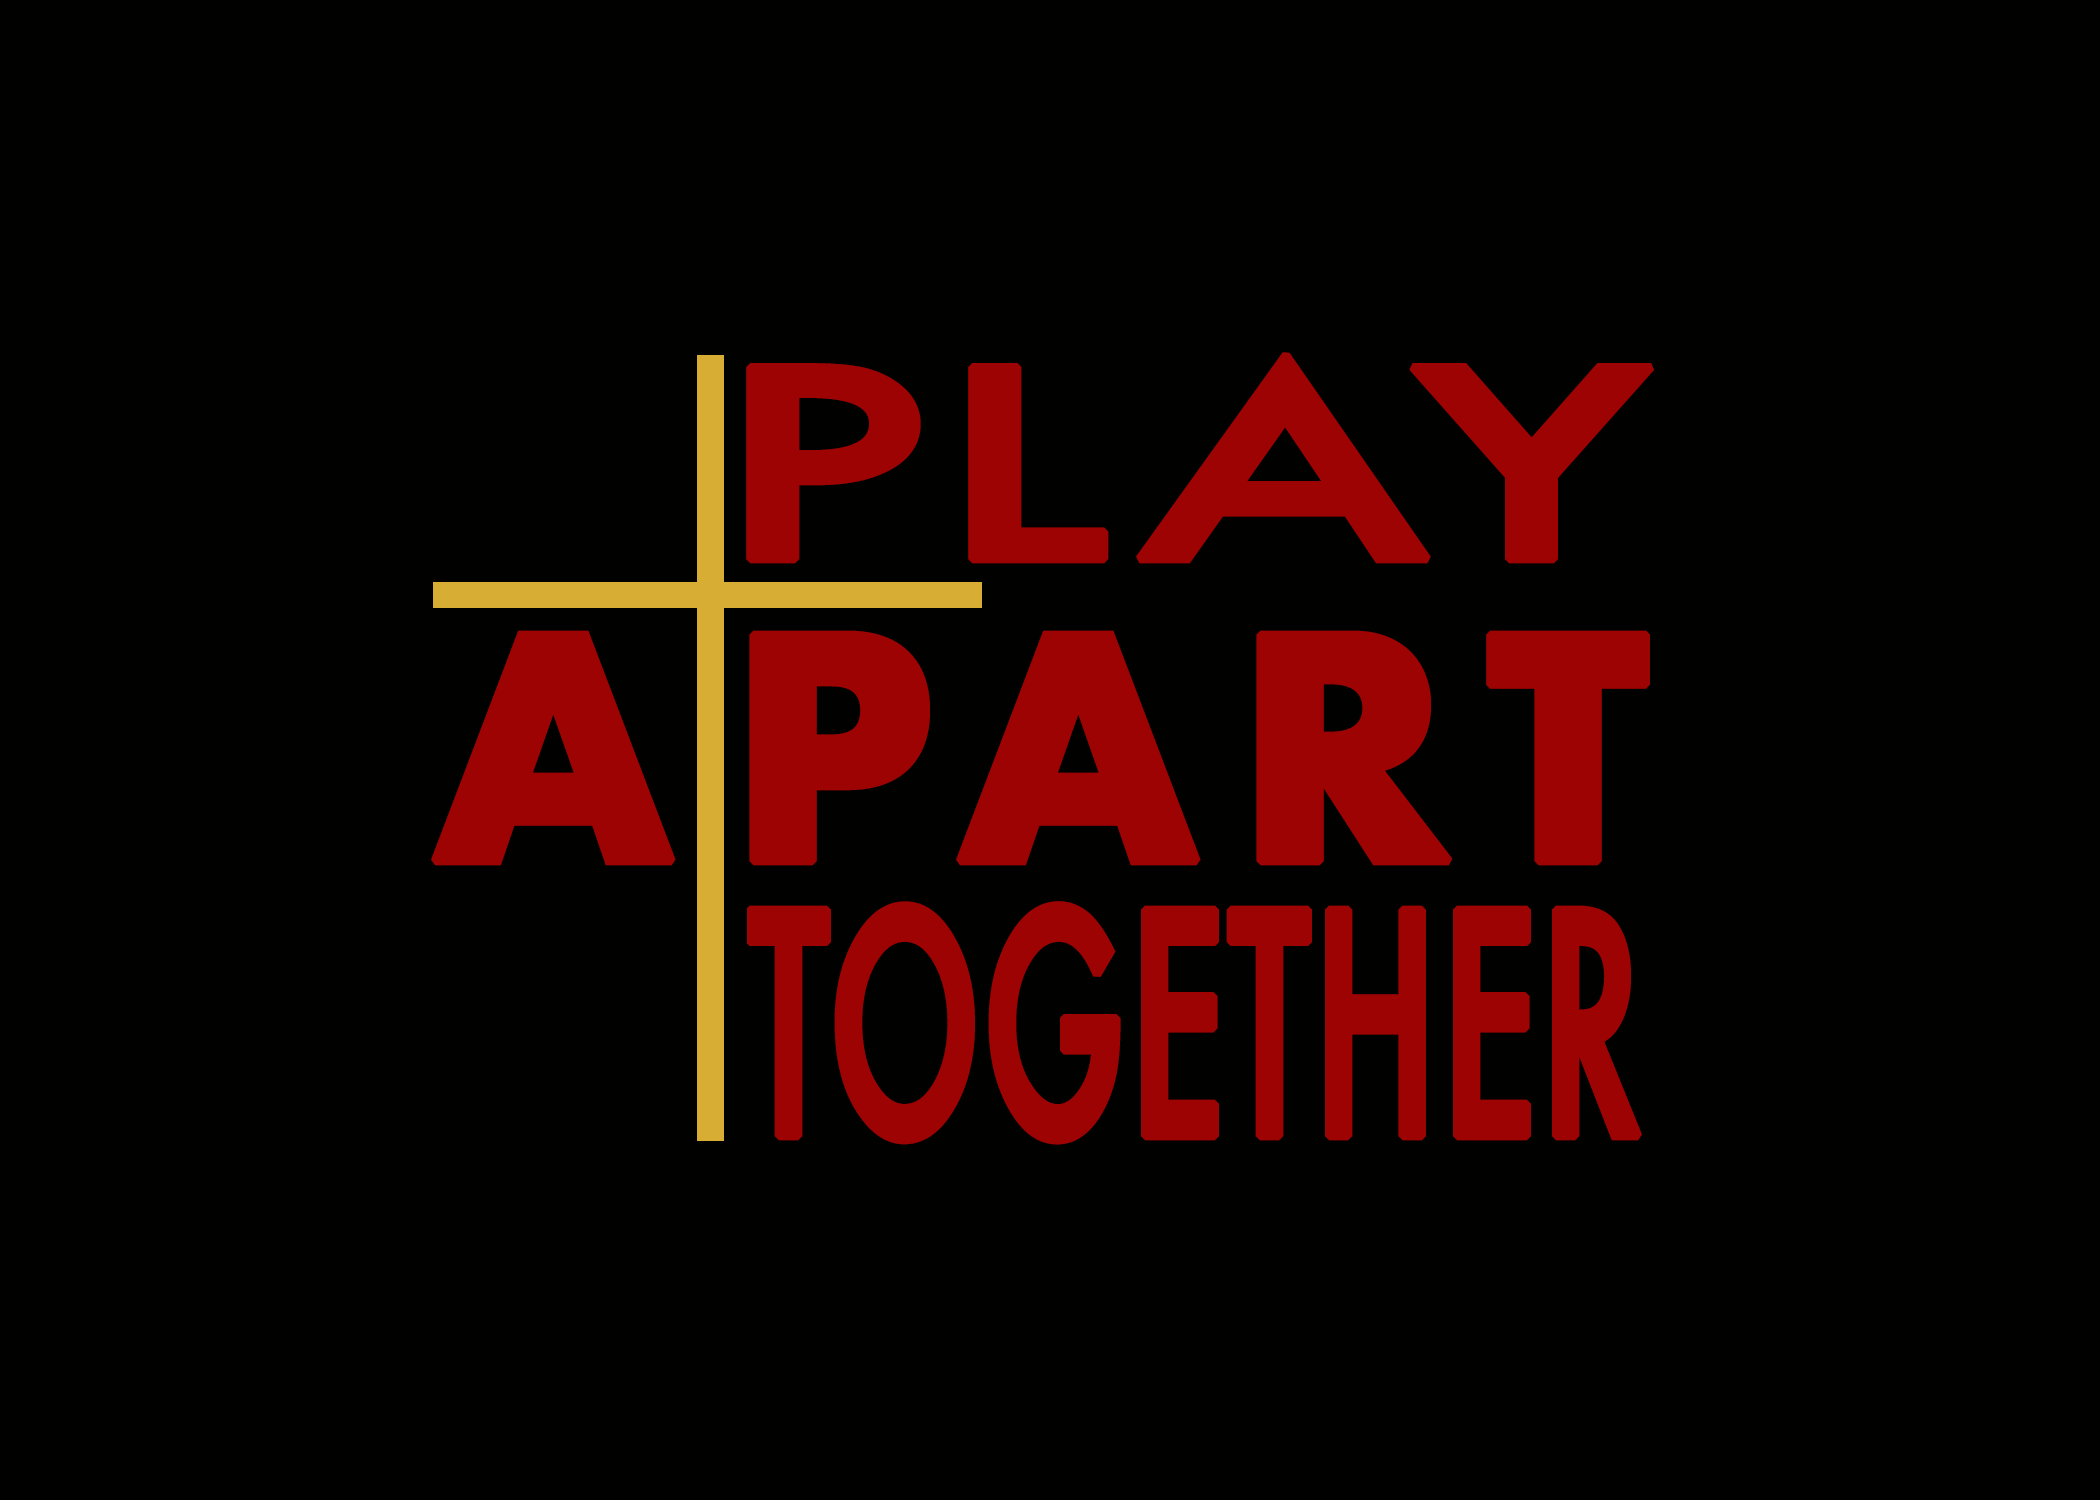 PLAY APART TOGETHER - Logo (Color on Bla